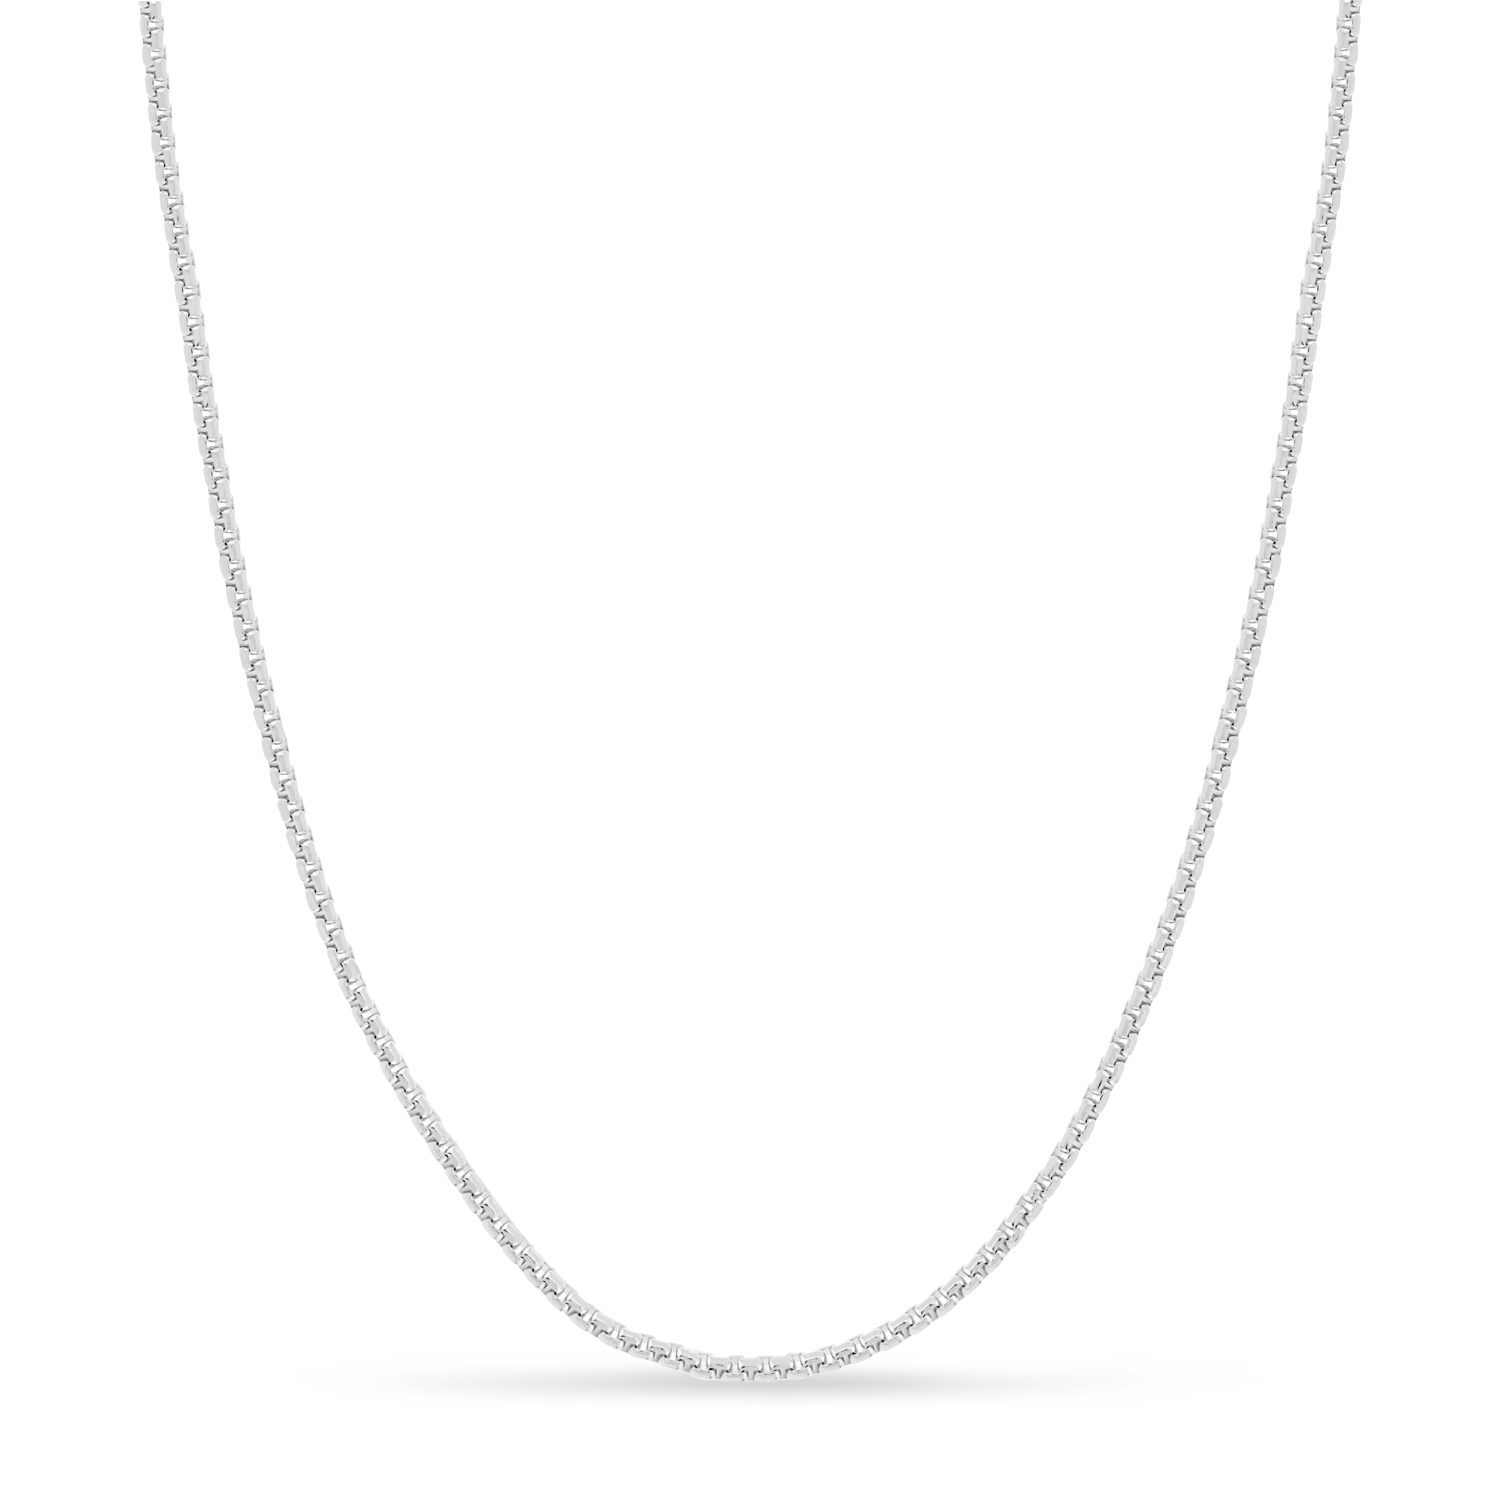 Large Round Box Chain Necklace 14k White Gold